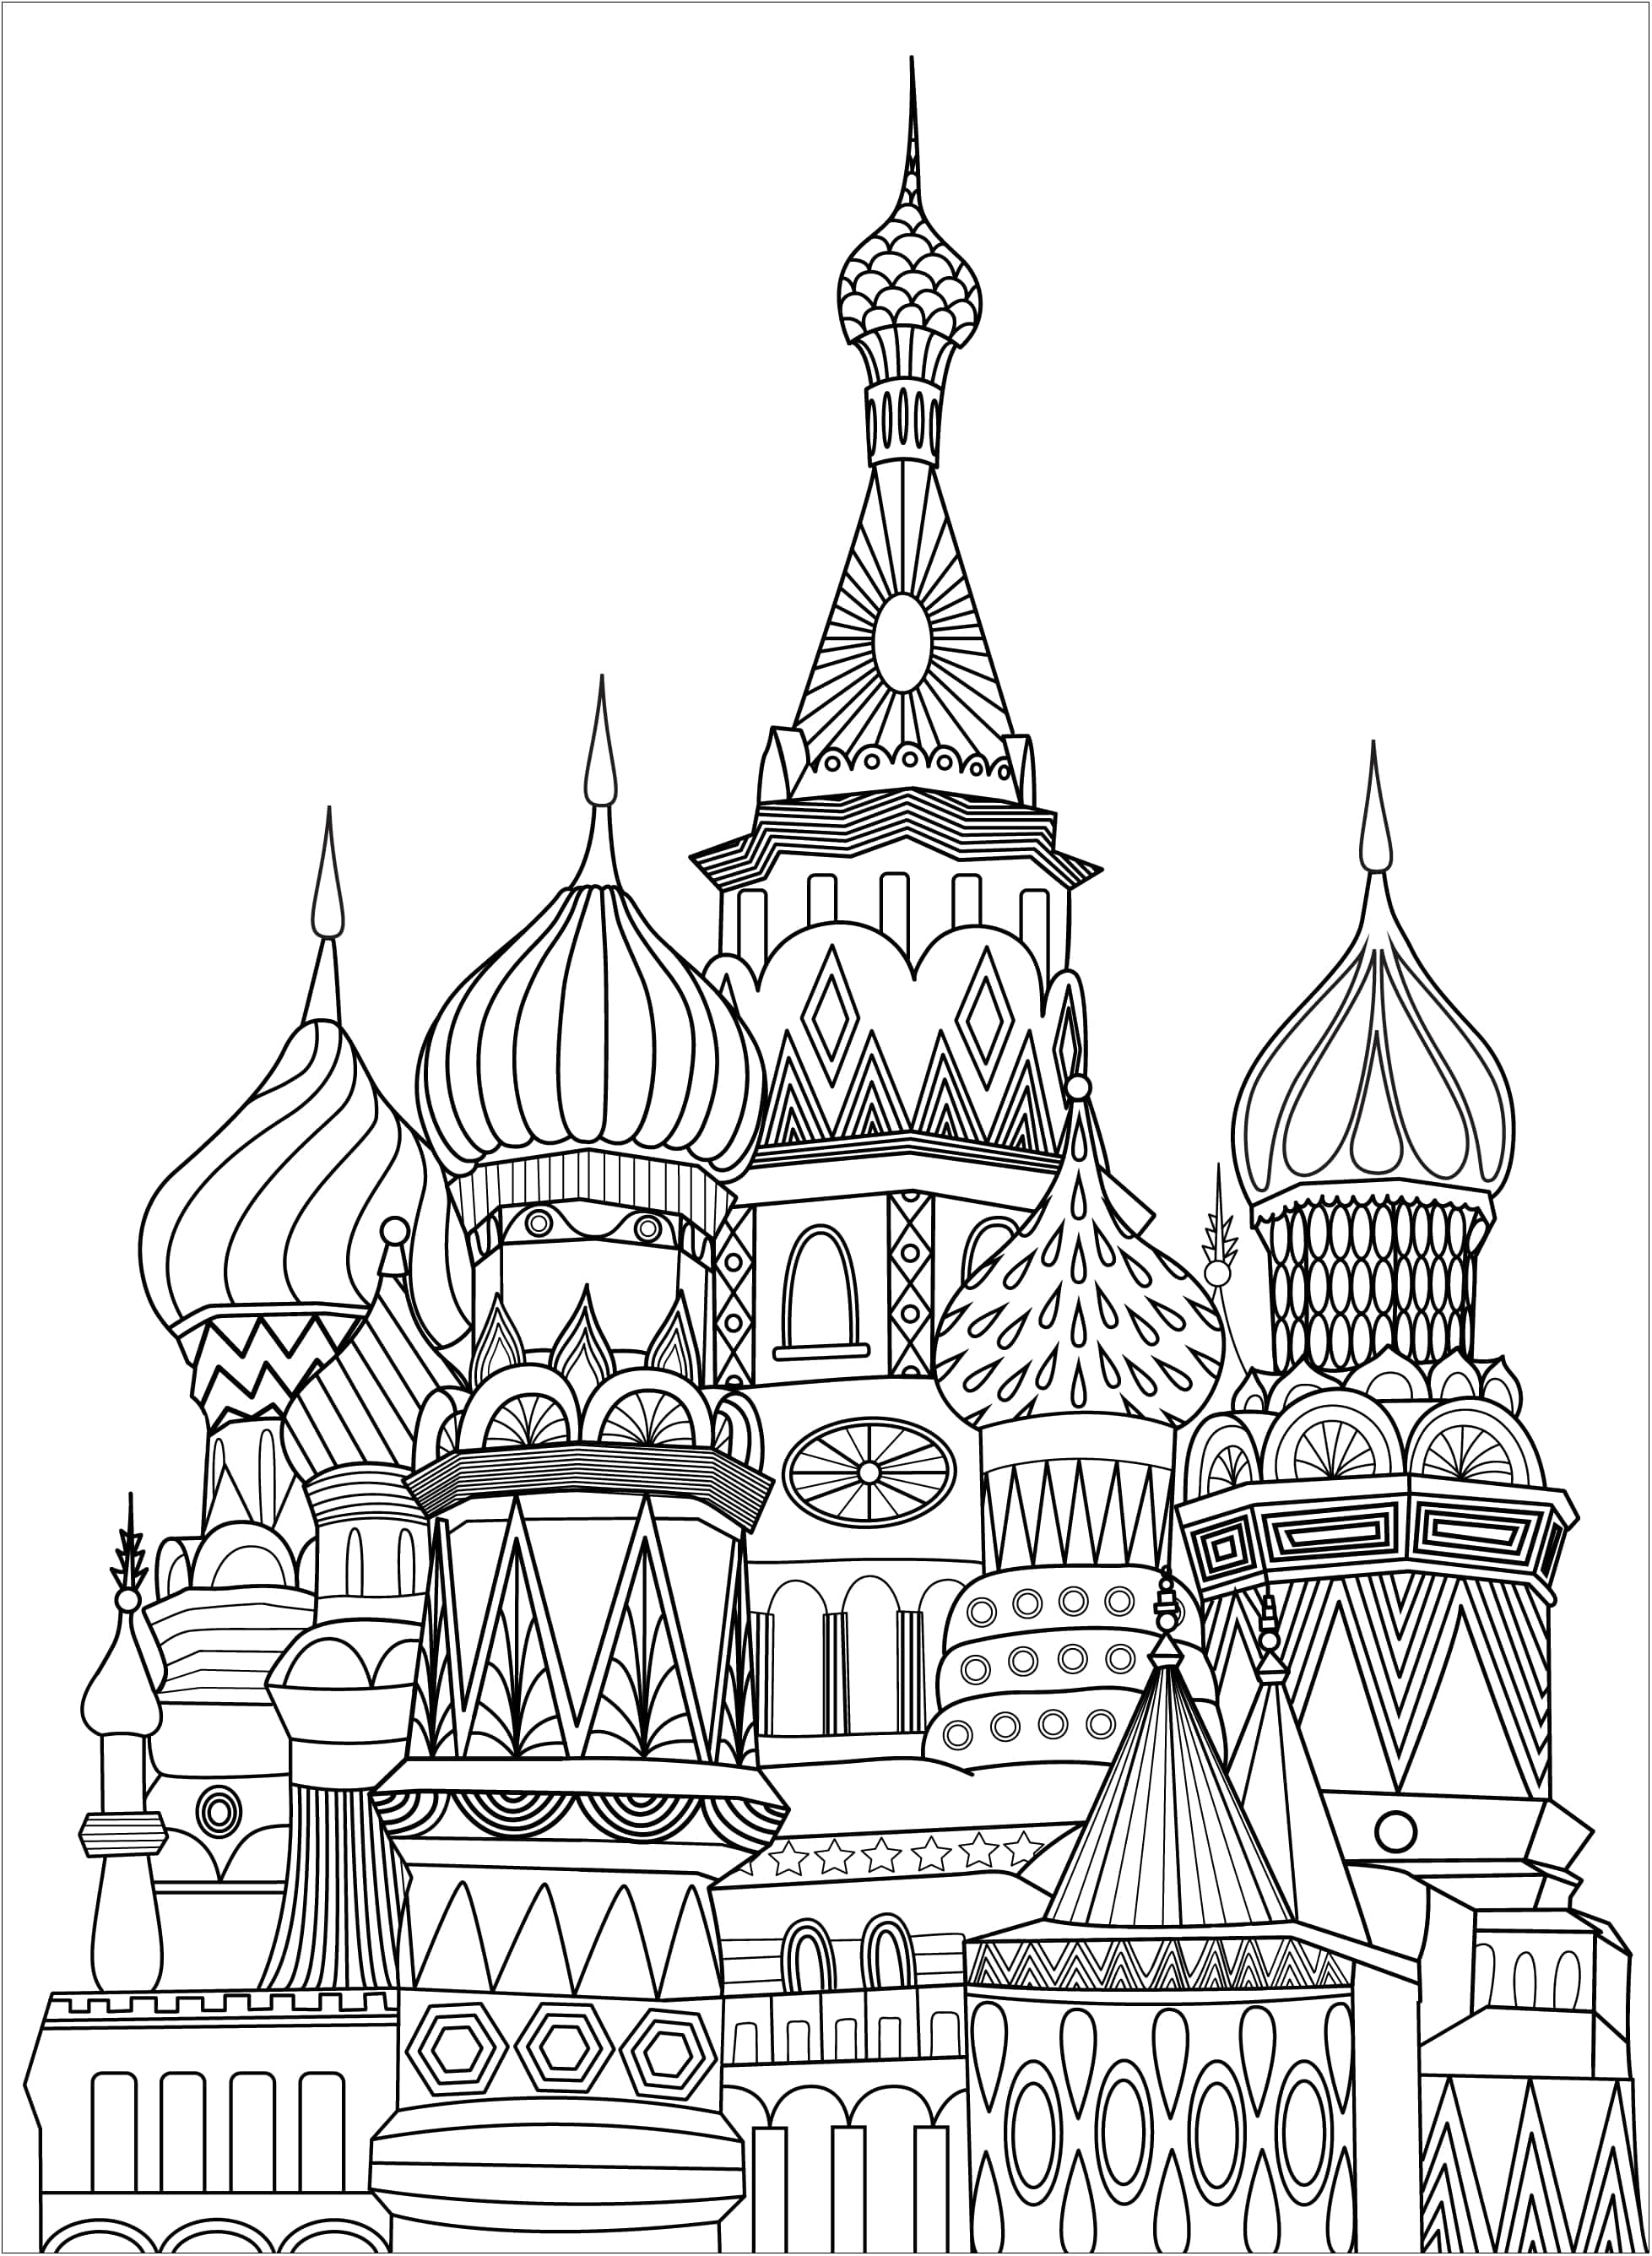 Unique coloring page representing Red Square in Moscow. Red Square is an open square in Moscow adjoining the historic fortress and centre of government known as the Kremlin